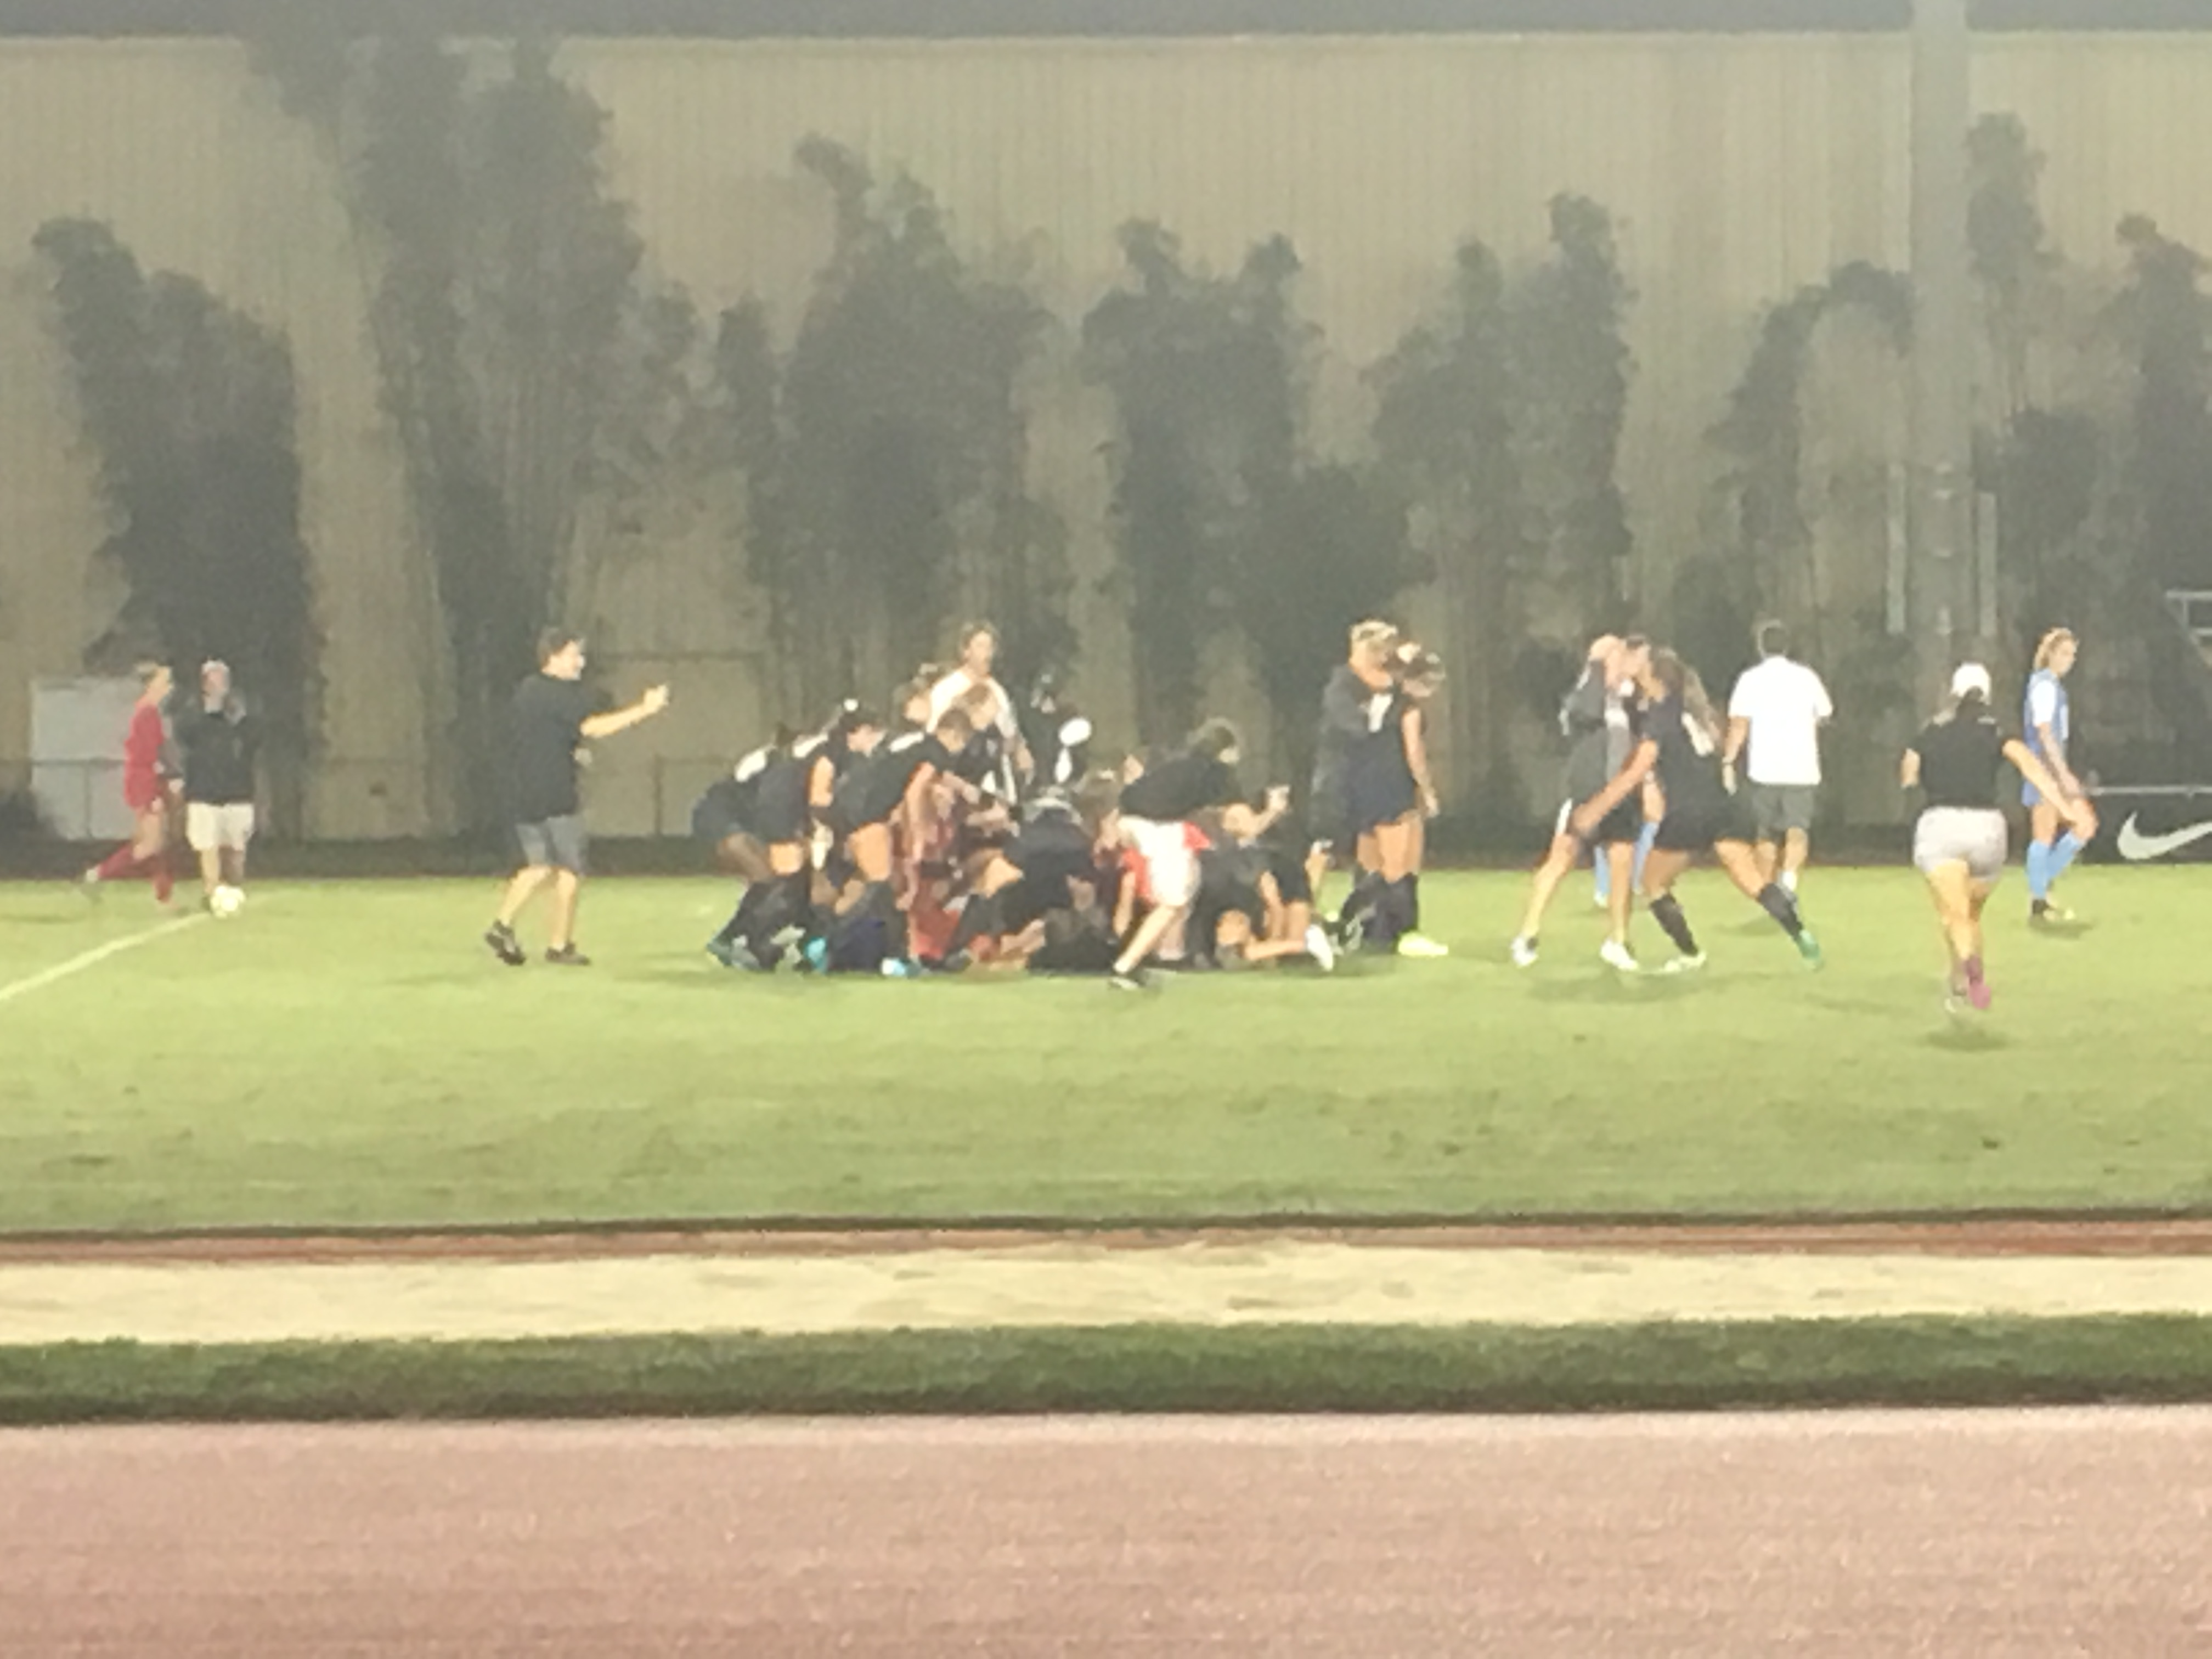 The UCF Women's Soccer Team celebrates Christine Creighton's golden goal that knocked off #4 North Carolina at the UCF Track and Soccer Complex on August 25th, 2017 (Photo: Jeff Sharon)